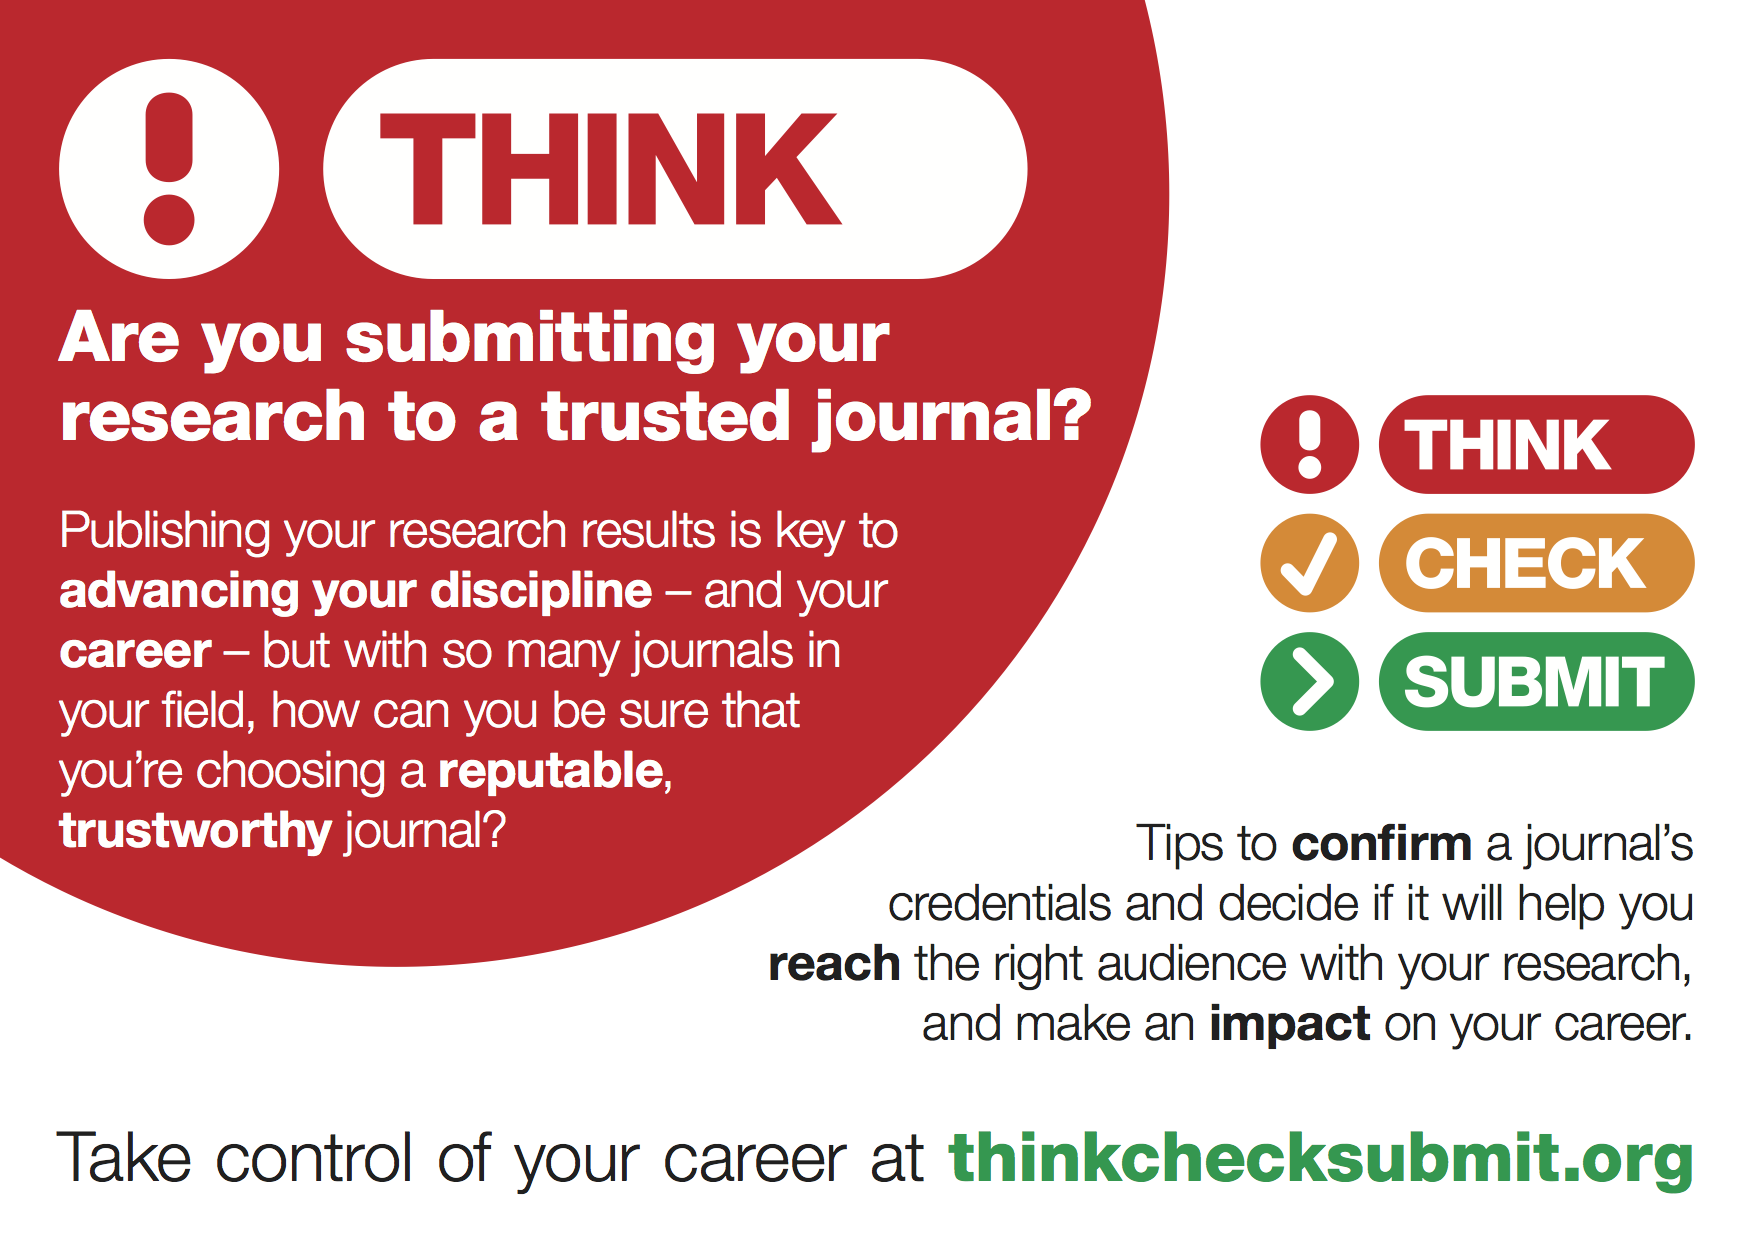 thinkchecksubmit.org poster and button